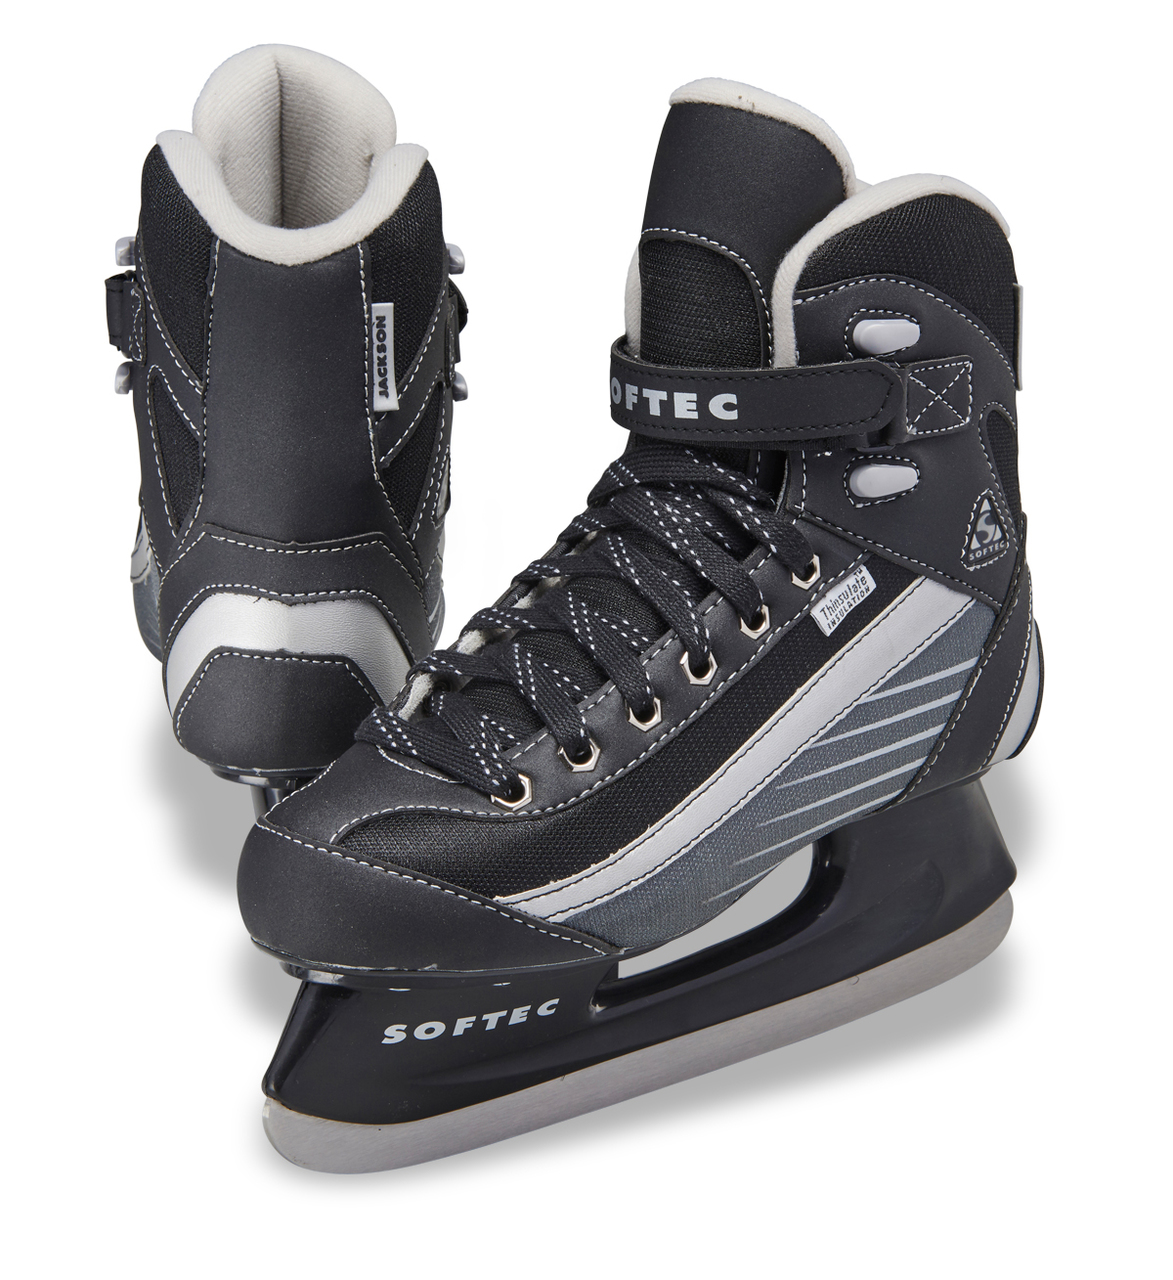 Figure Skates Softec Youth Sport ST6107 by